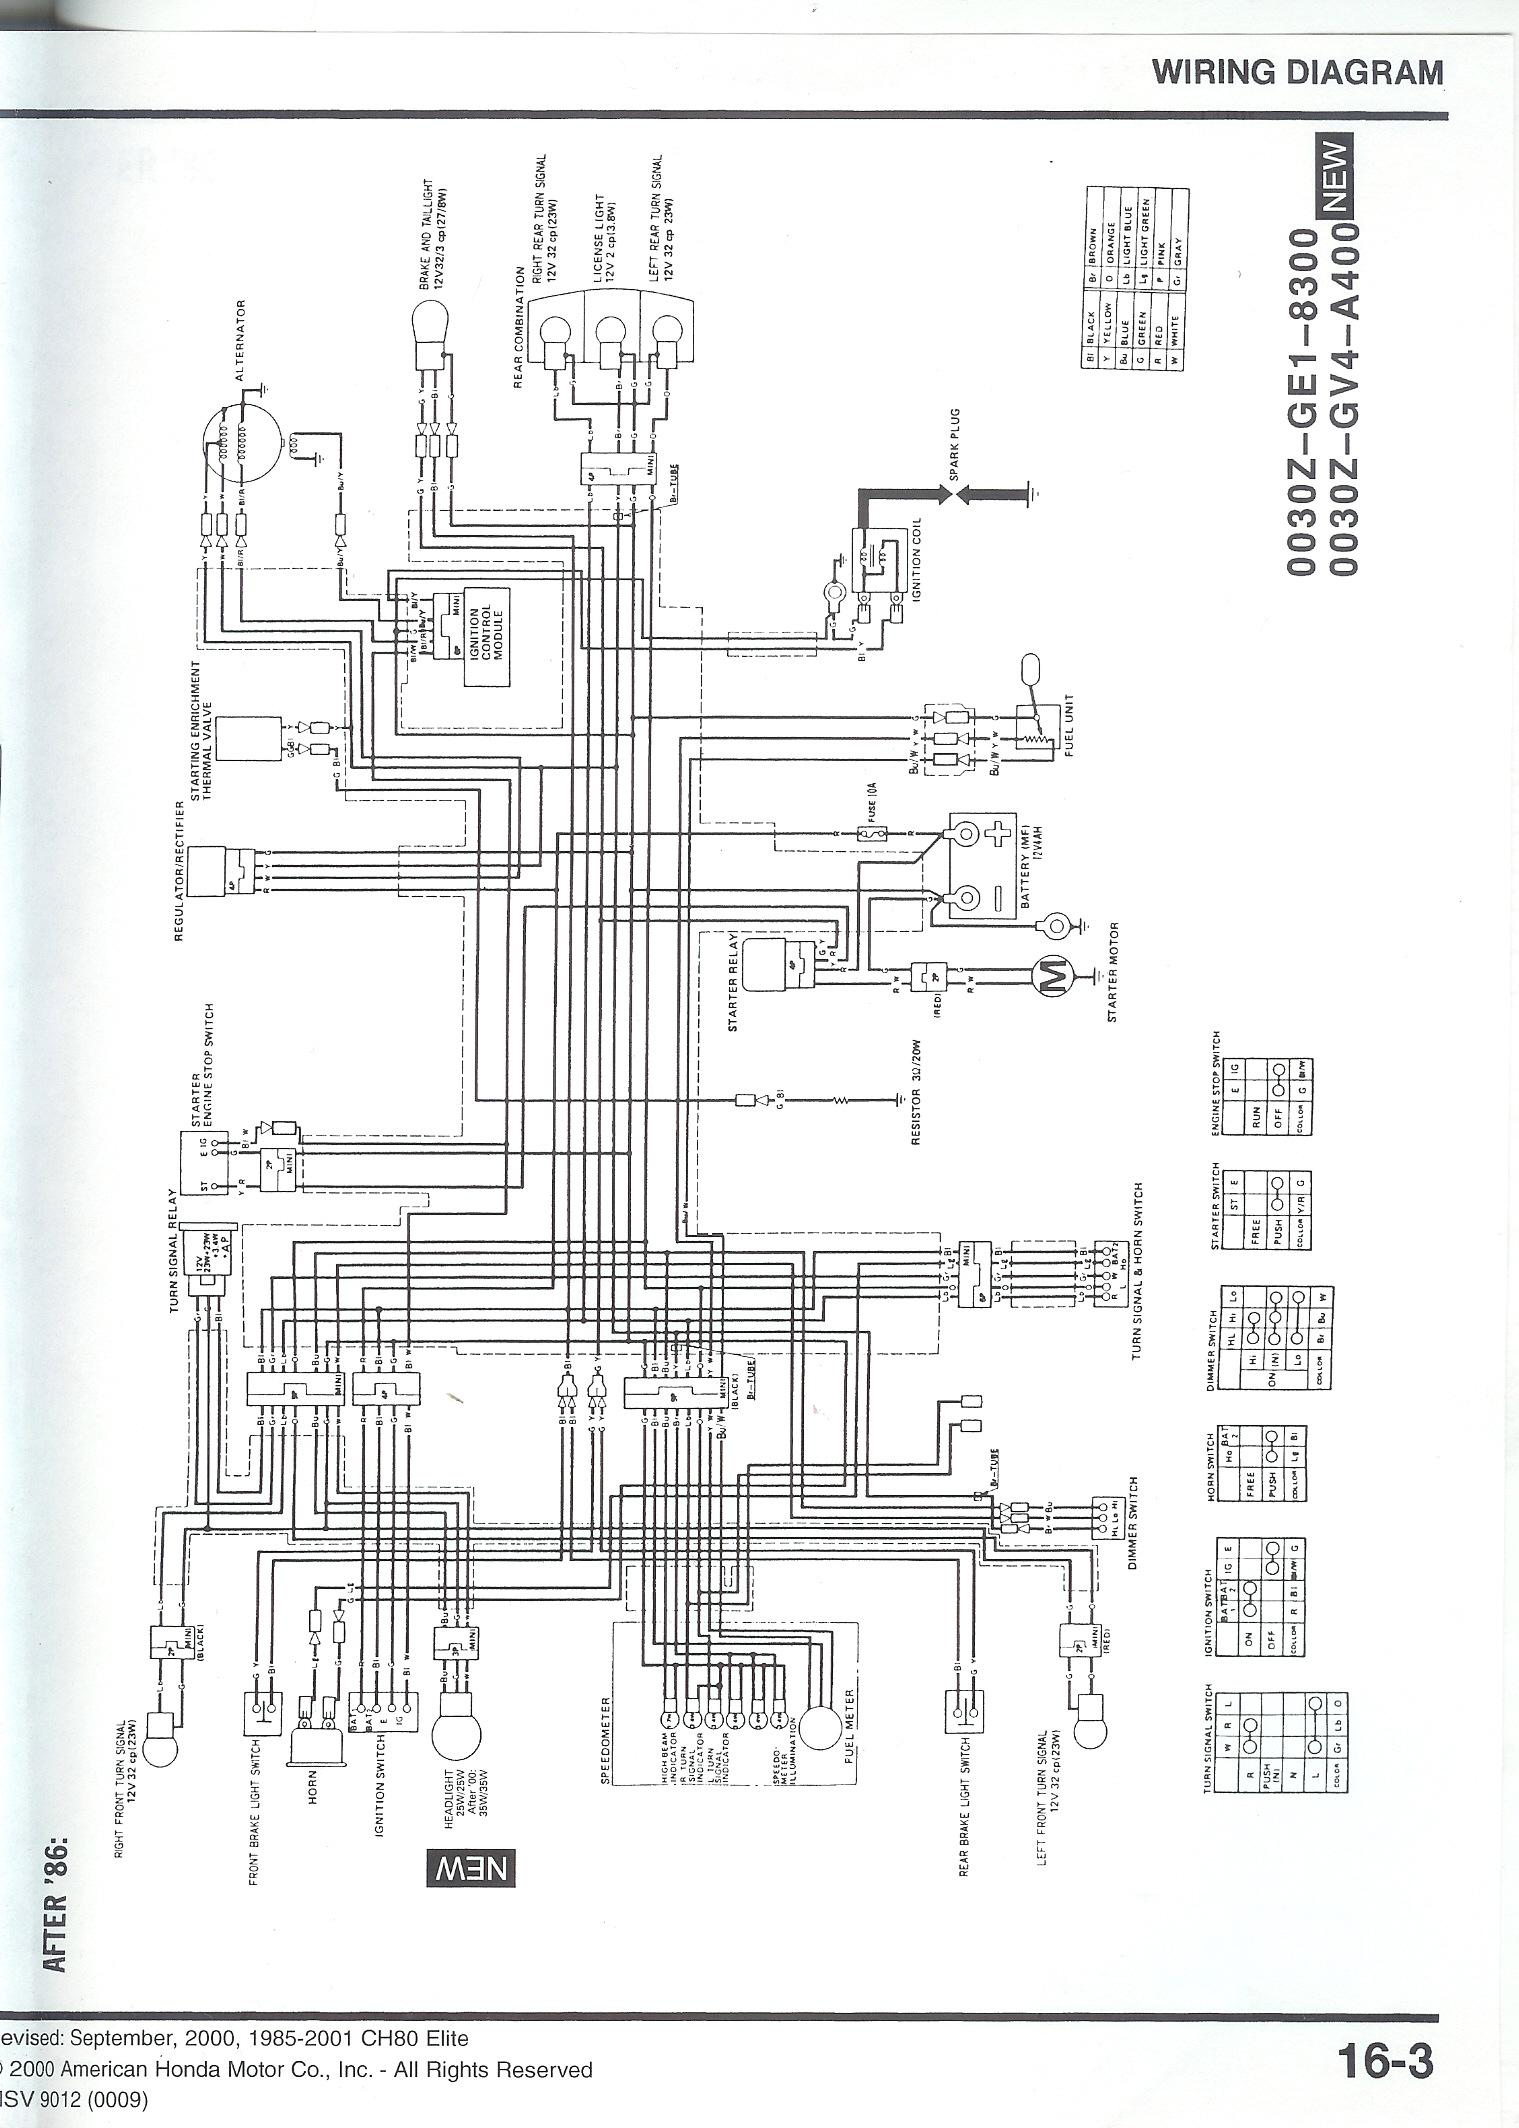 Atc Wiring Diagram Auto Electrical A Cdi Ignition For 185s